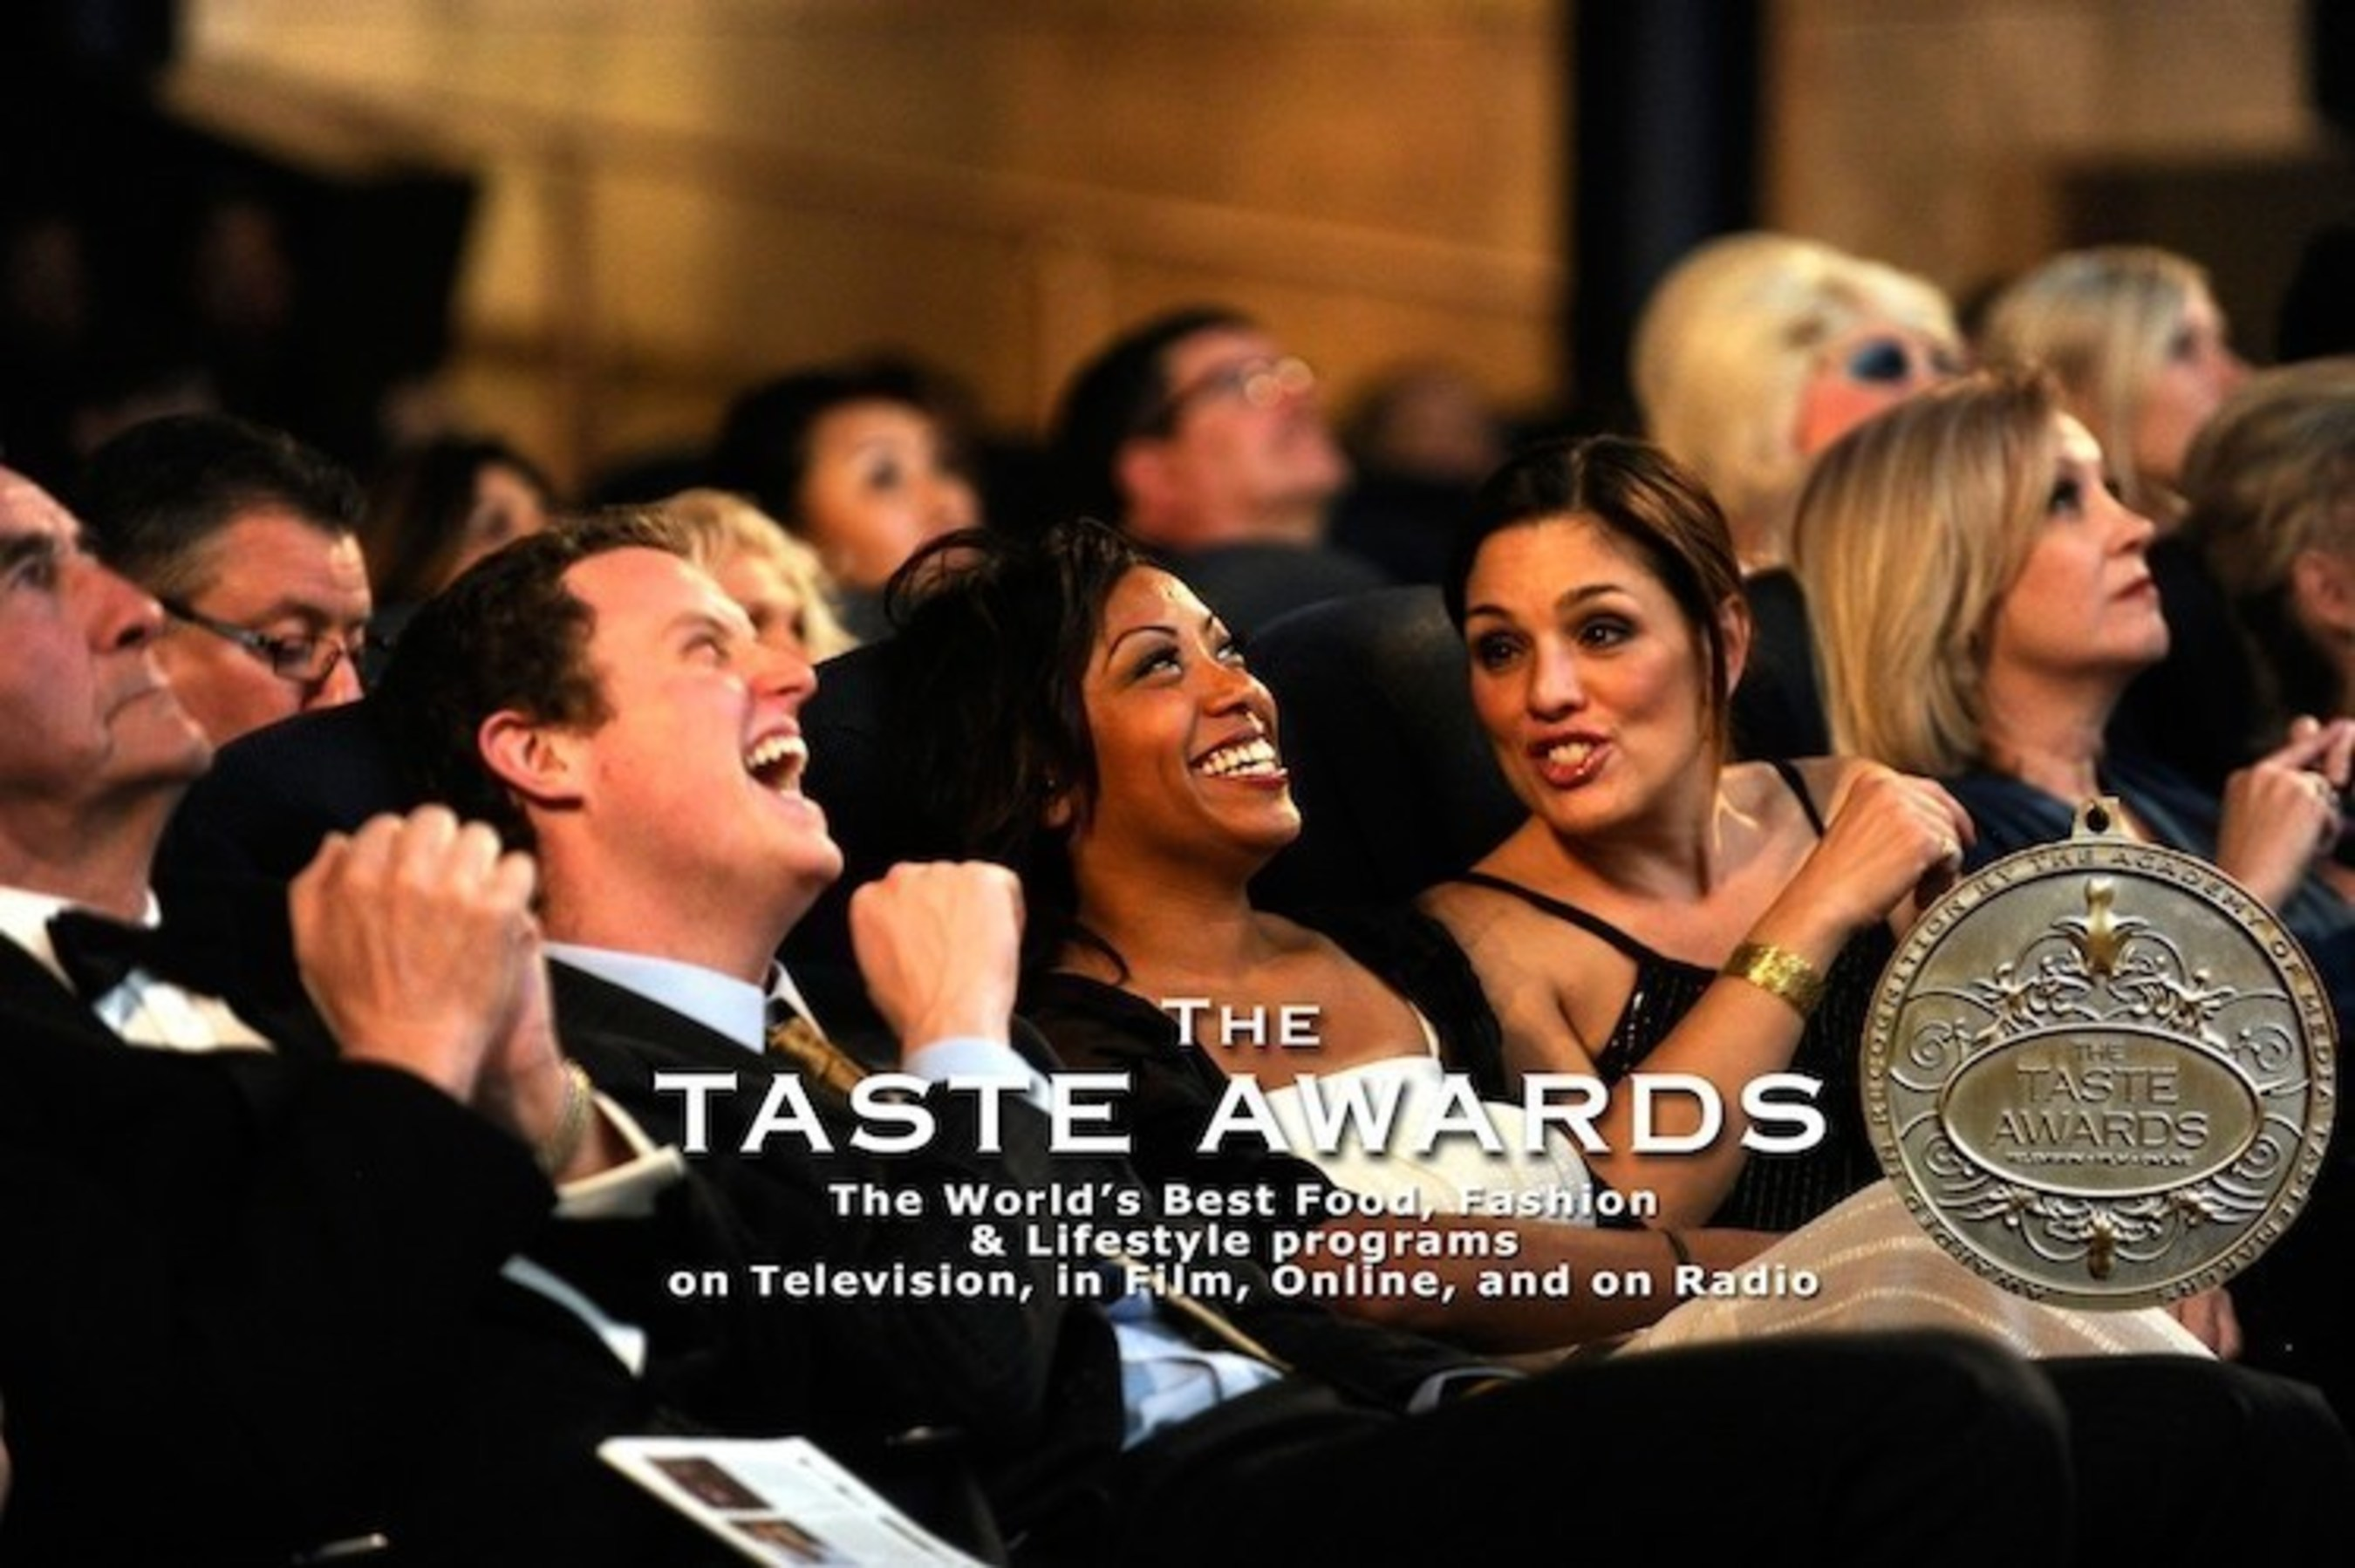 TASTE AWARDS Announce February 11th date in San Francisco for Food and Fashion TV, Film & Online Celebration